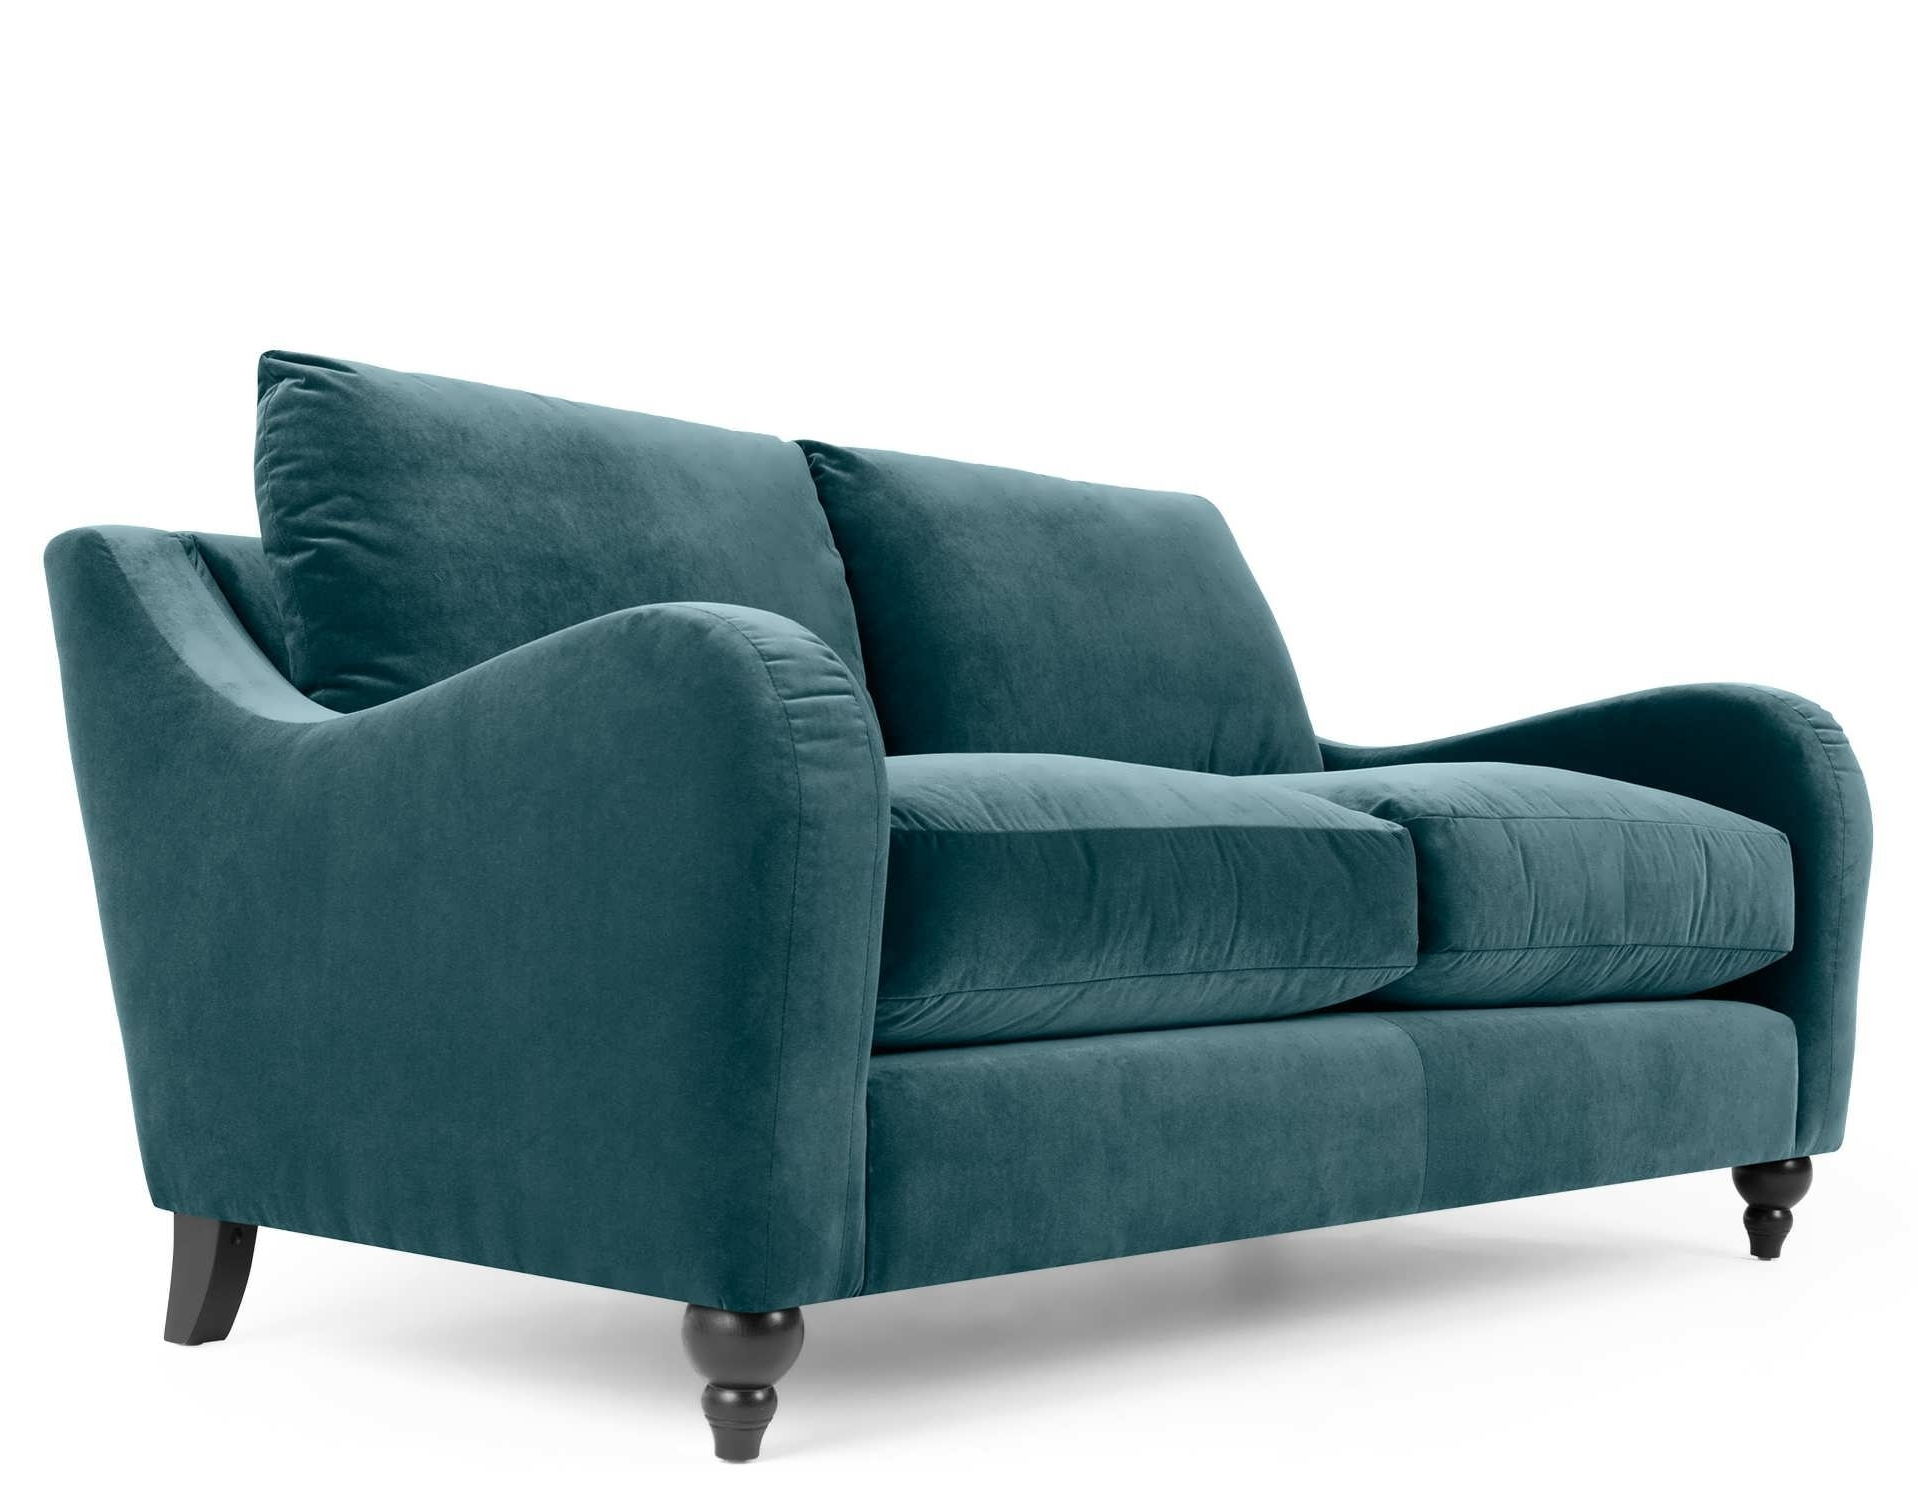 Trendy Sofa : Modern Couches Lounge Seating Fancy Couch Chaise Lounge Bed Pertaining To Chaise Couches (View 13 of 15)